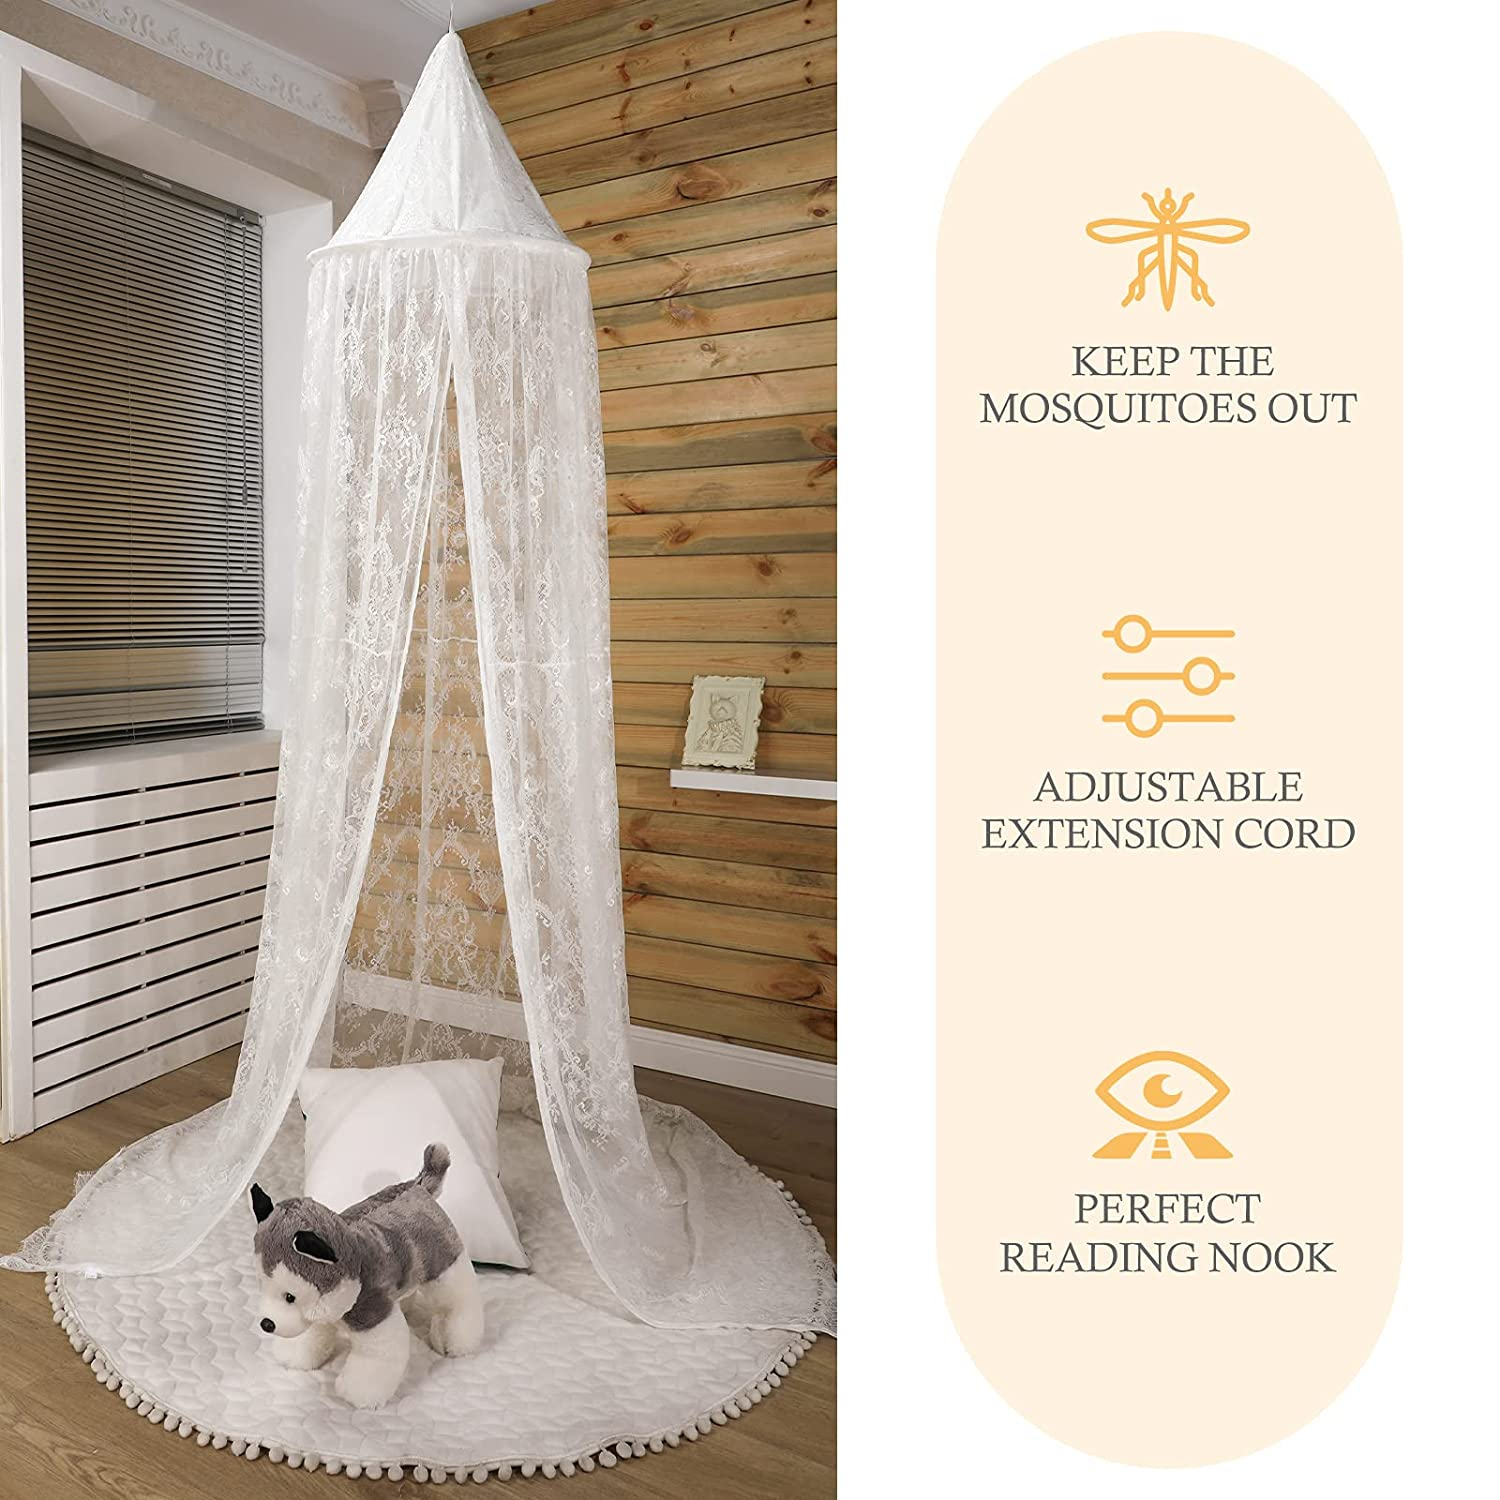 Crib Lace Net Princess Bed Canopy Breathable Fairy Tent Baby Crib Netting Canopy for Girls Children's Play Castle Design, White